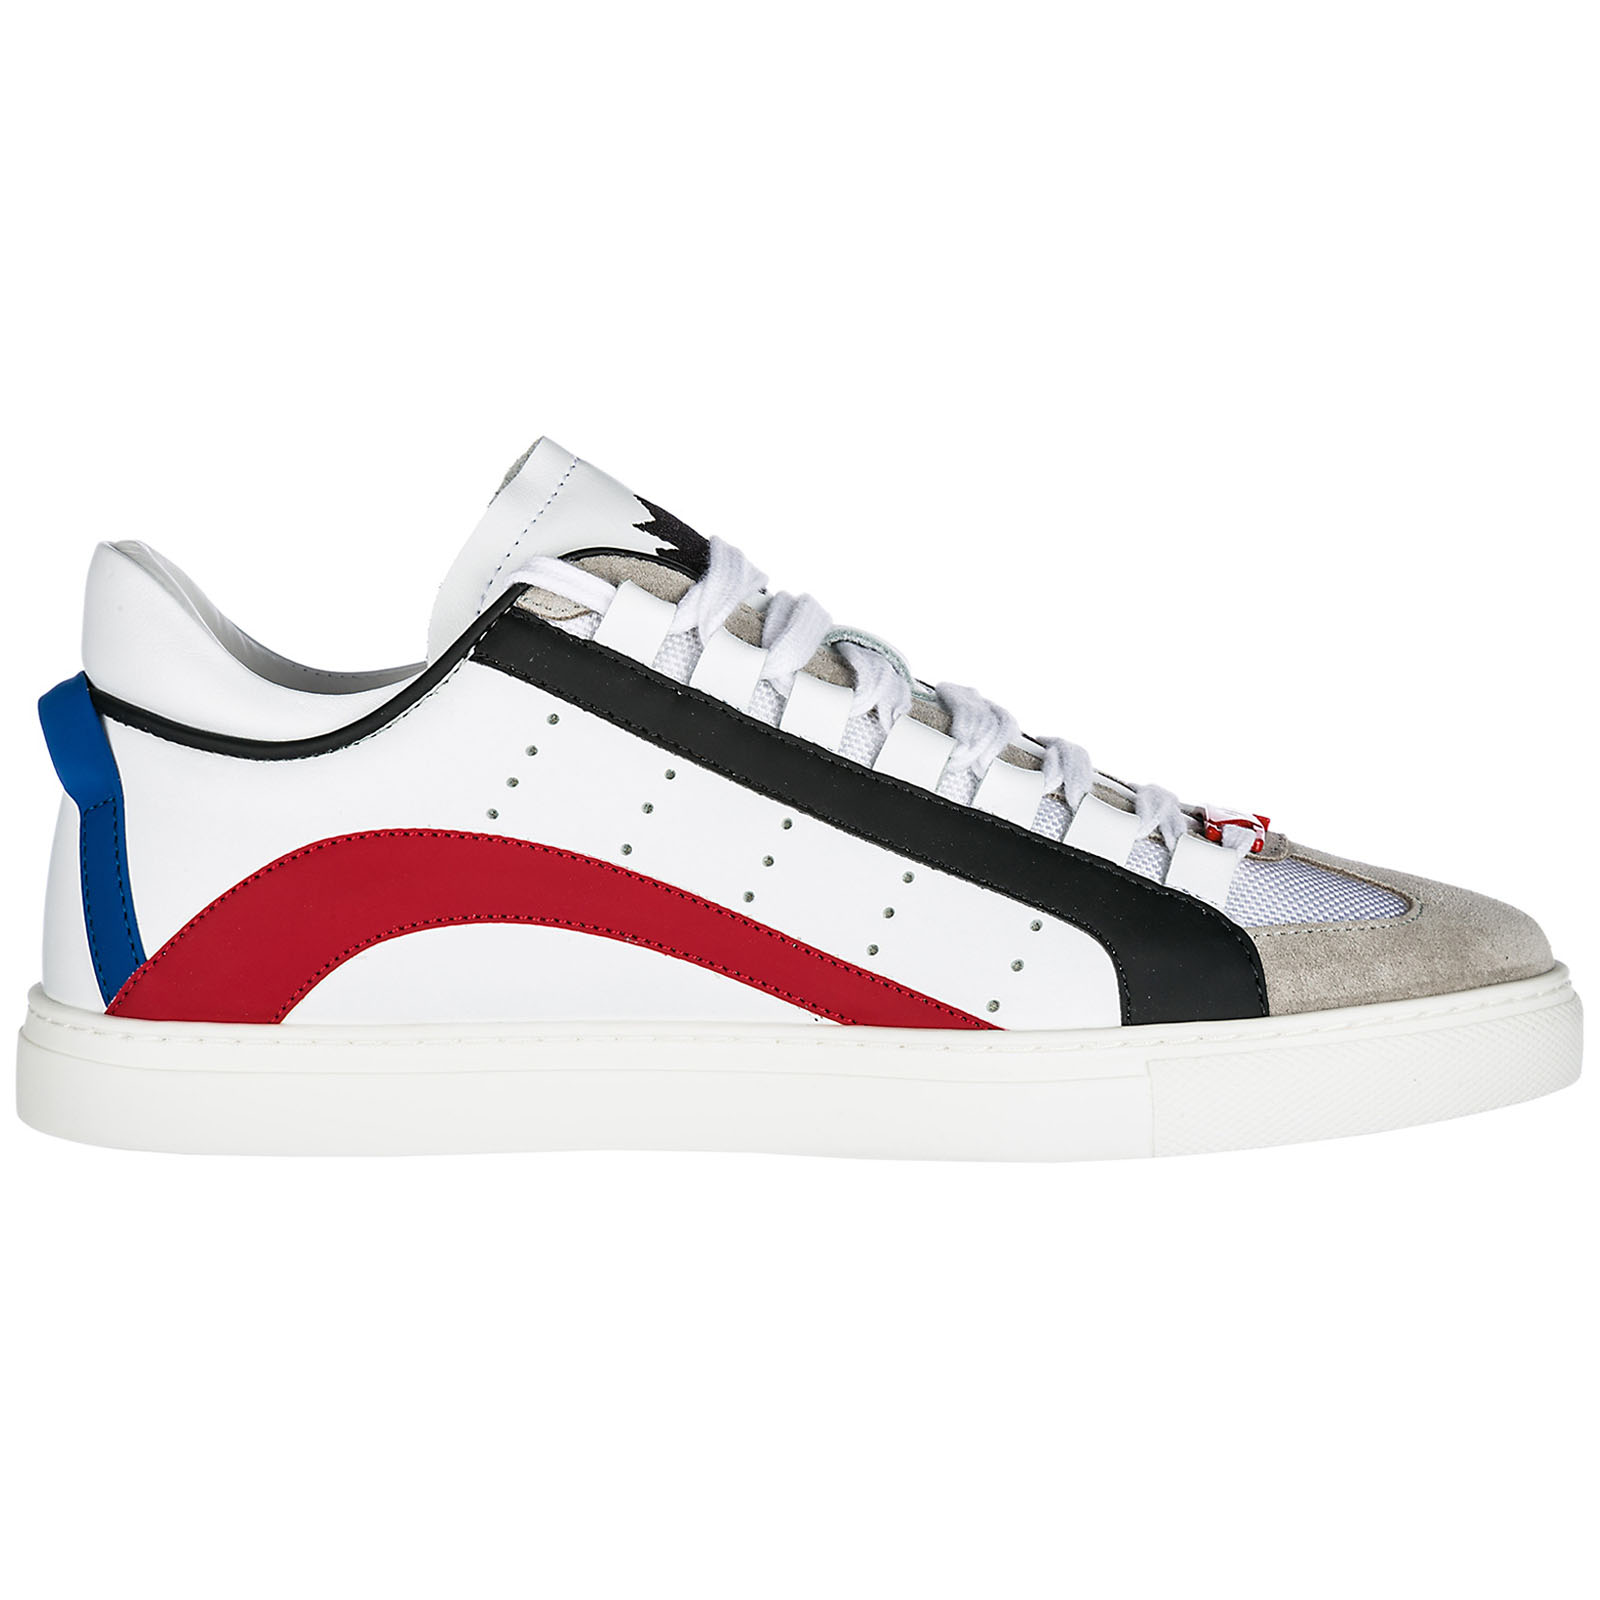 Sneakers Dsquared2 551 SNM000611570001M244 bianco - rosso  a21d854976a7